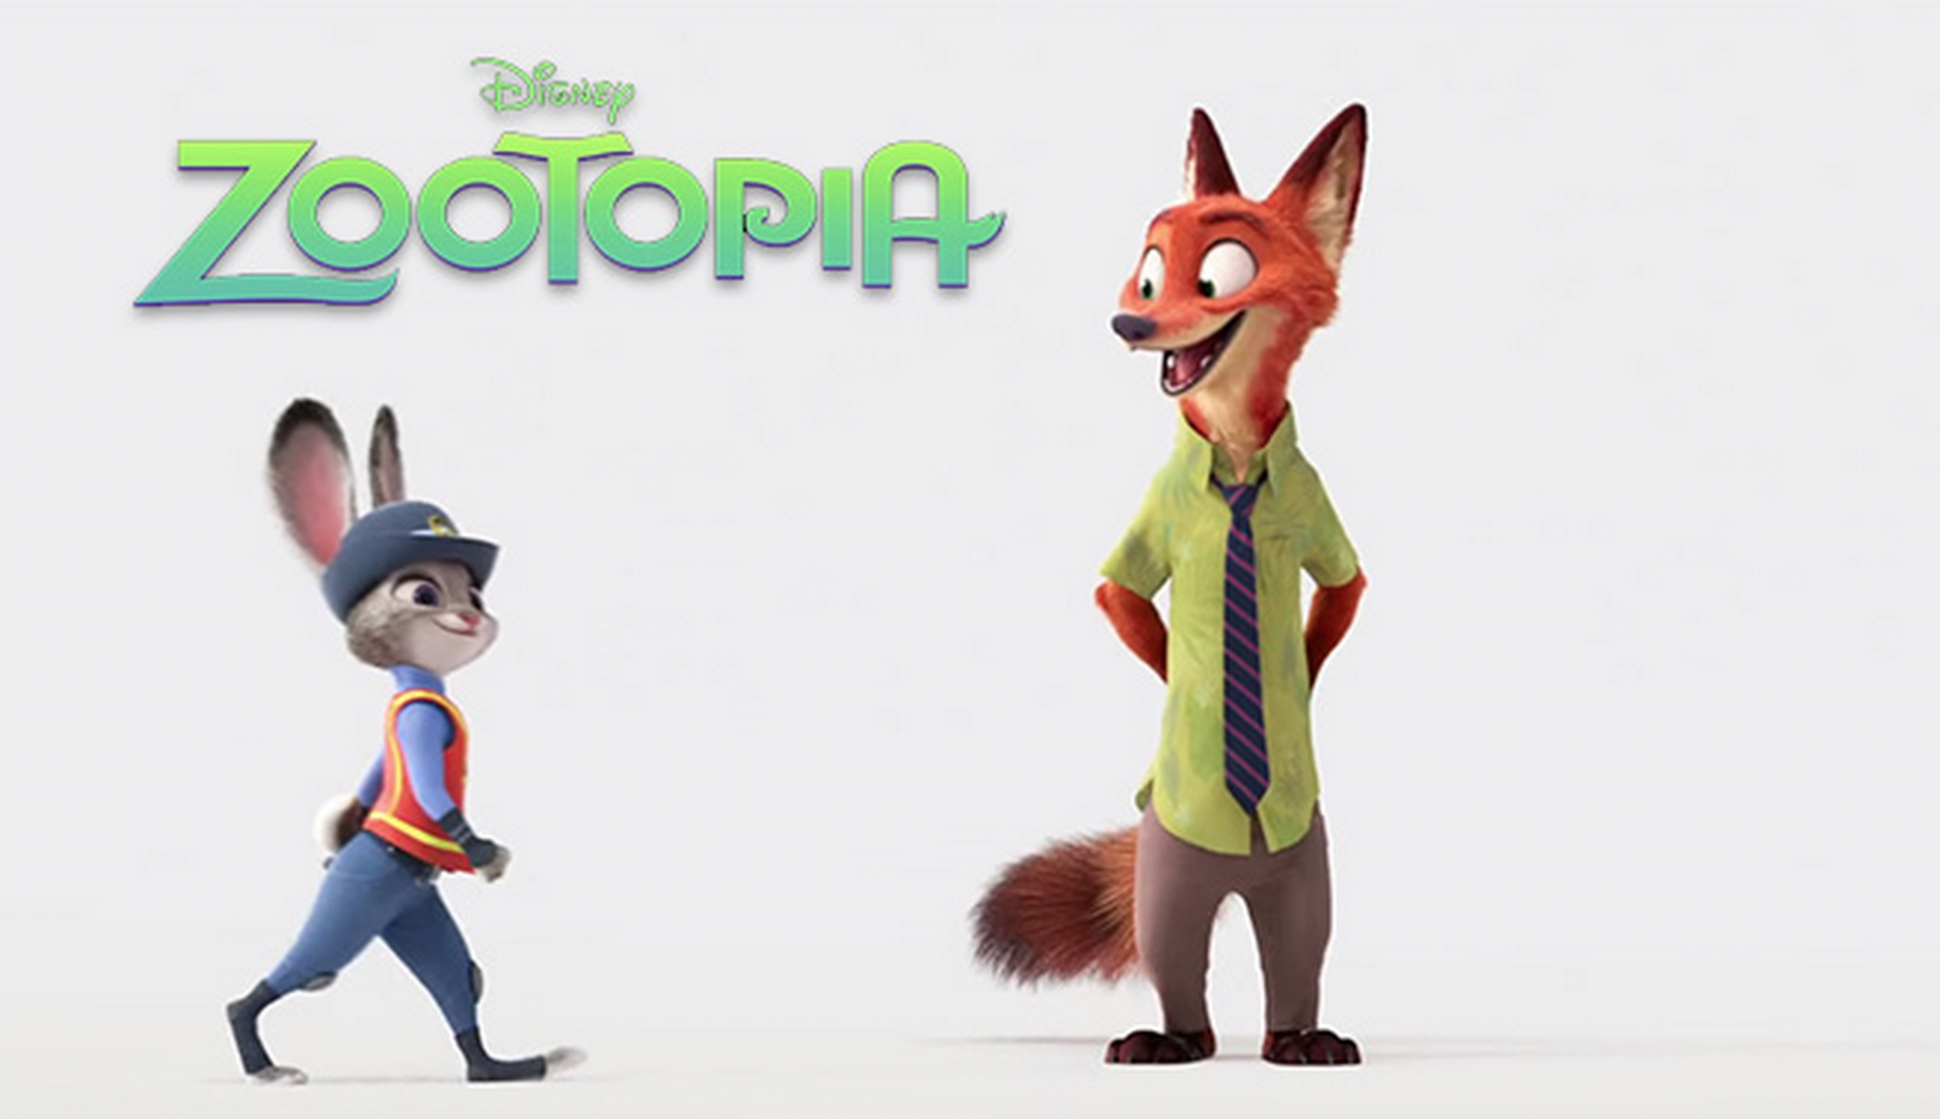 Png Zootopia - Officer Judy Hopps and Nick Wilde, best friends and crime fighting partners  from the Disney